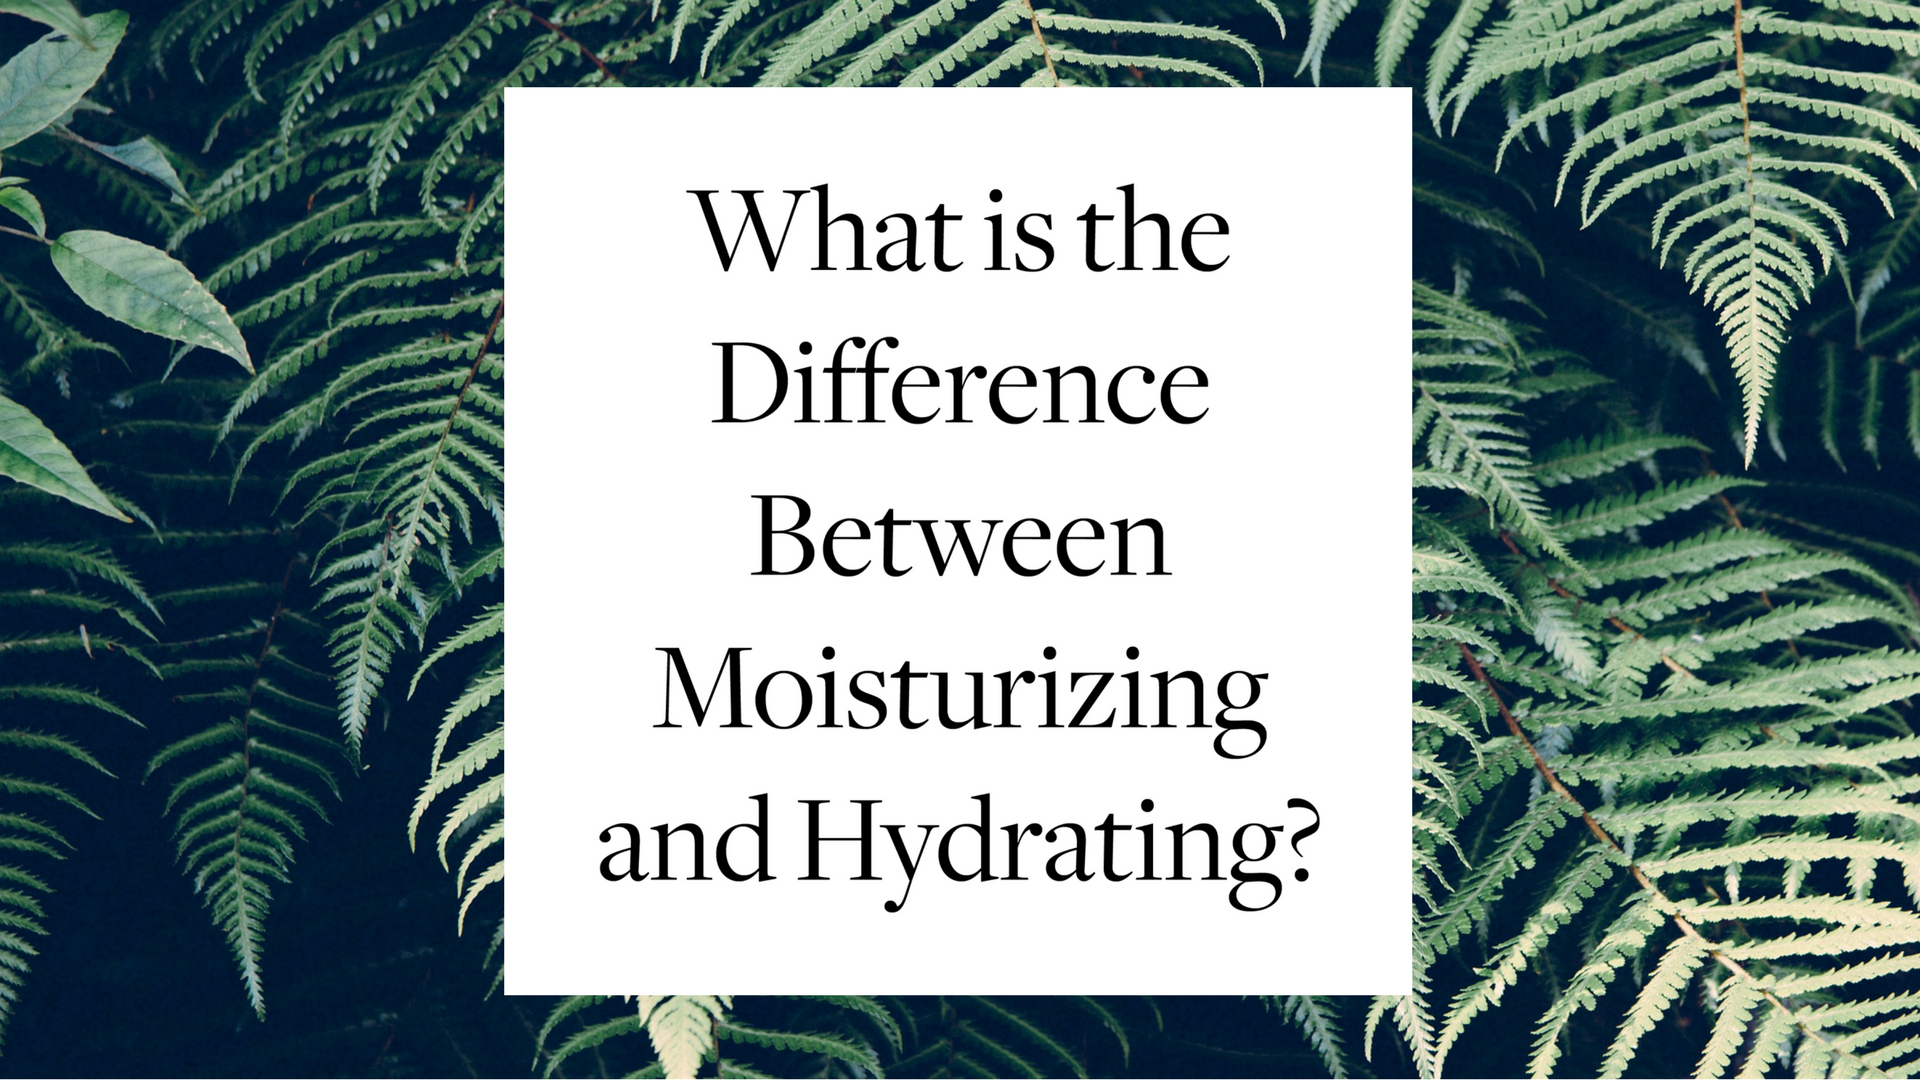 What is the Difference Between Moisturizing and Hydrating